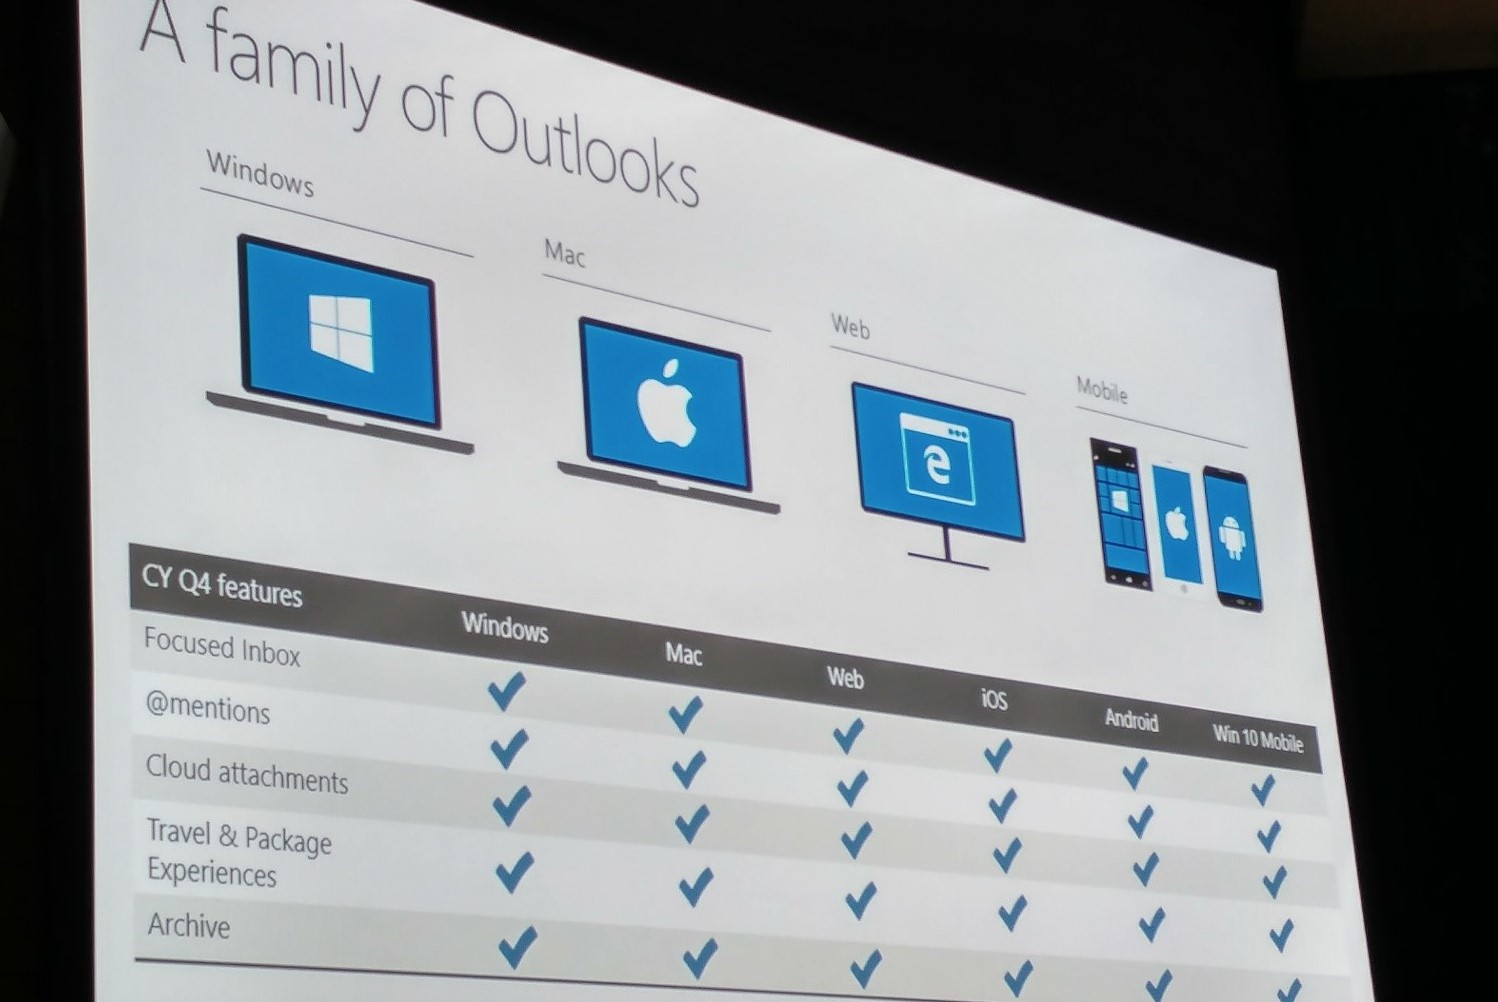 microsoft ignite caase family of outlook